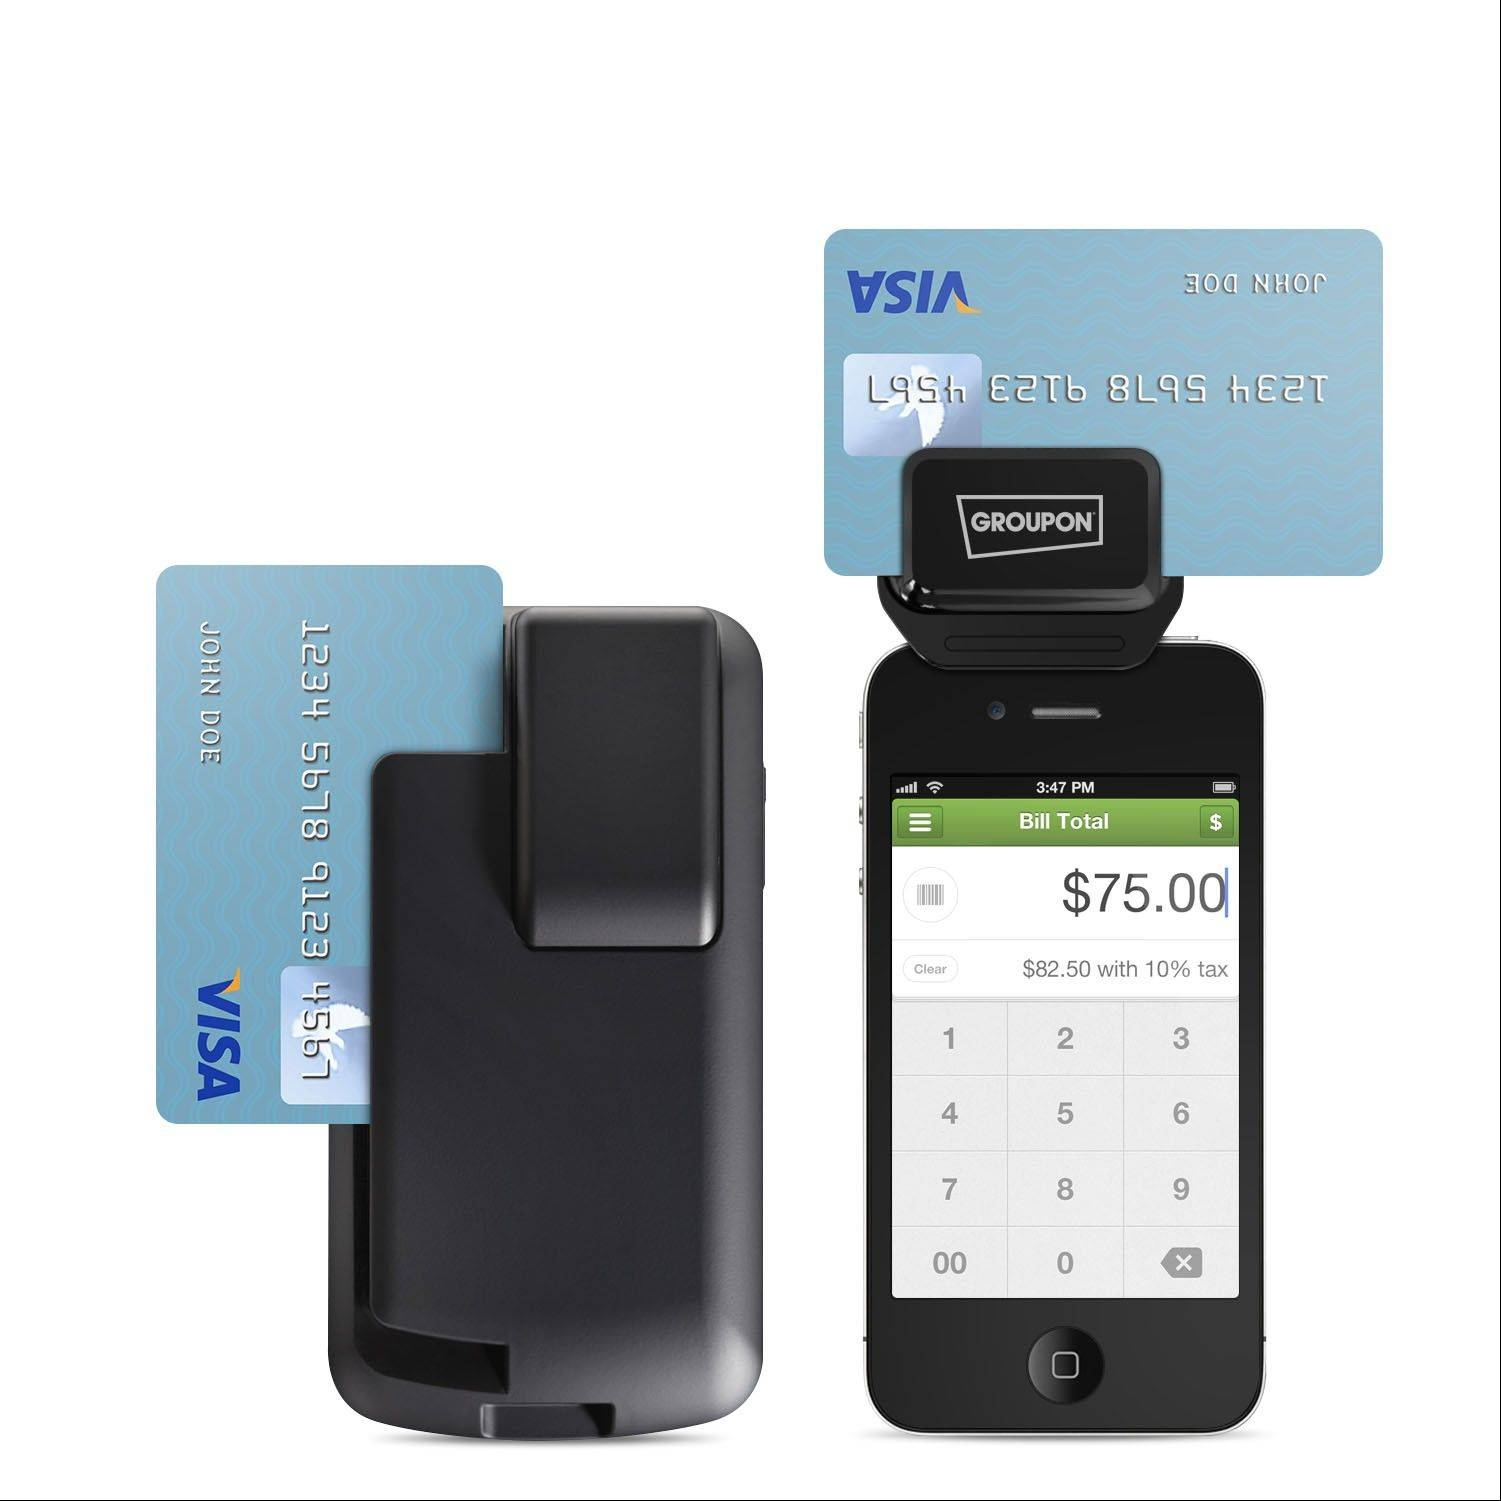 Groupon's new payment service allows businesses to run credit cards using an iPhone or iPod Touch.